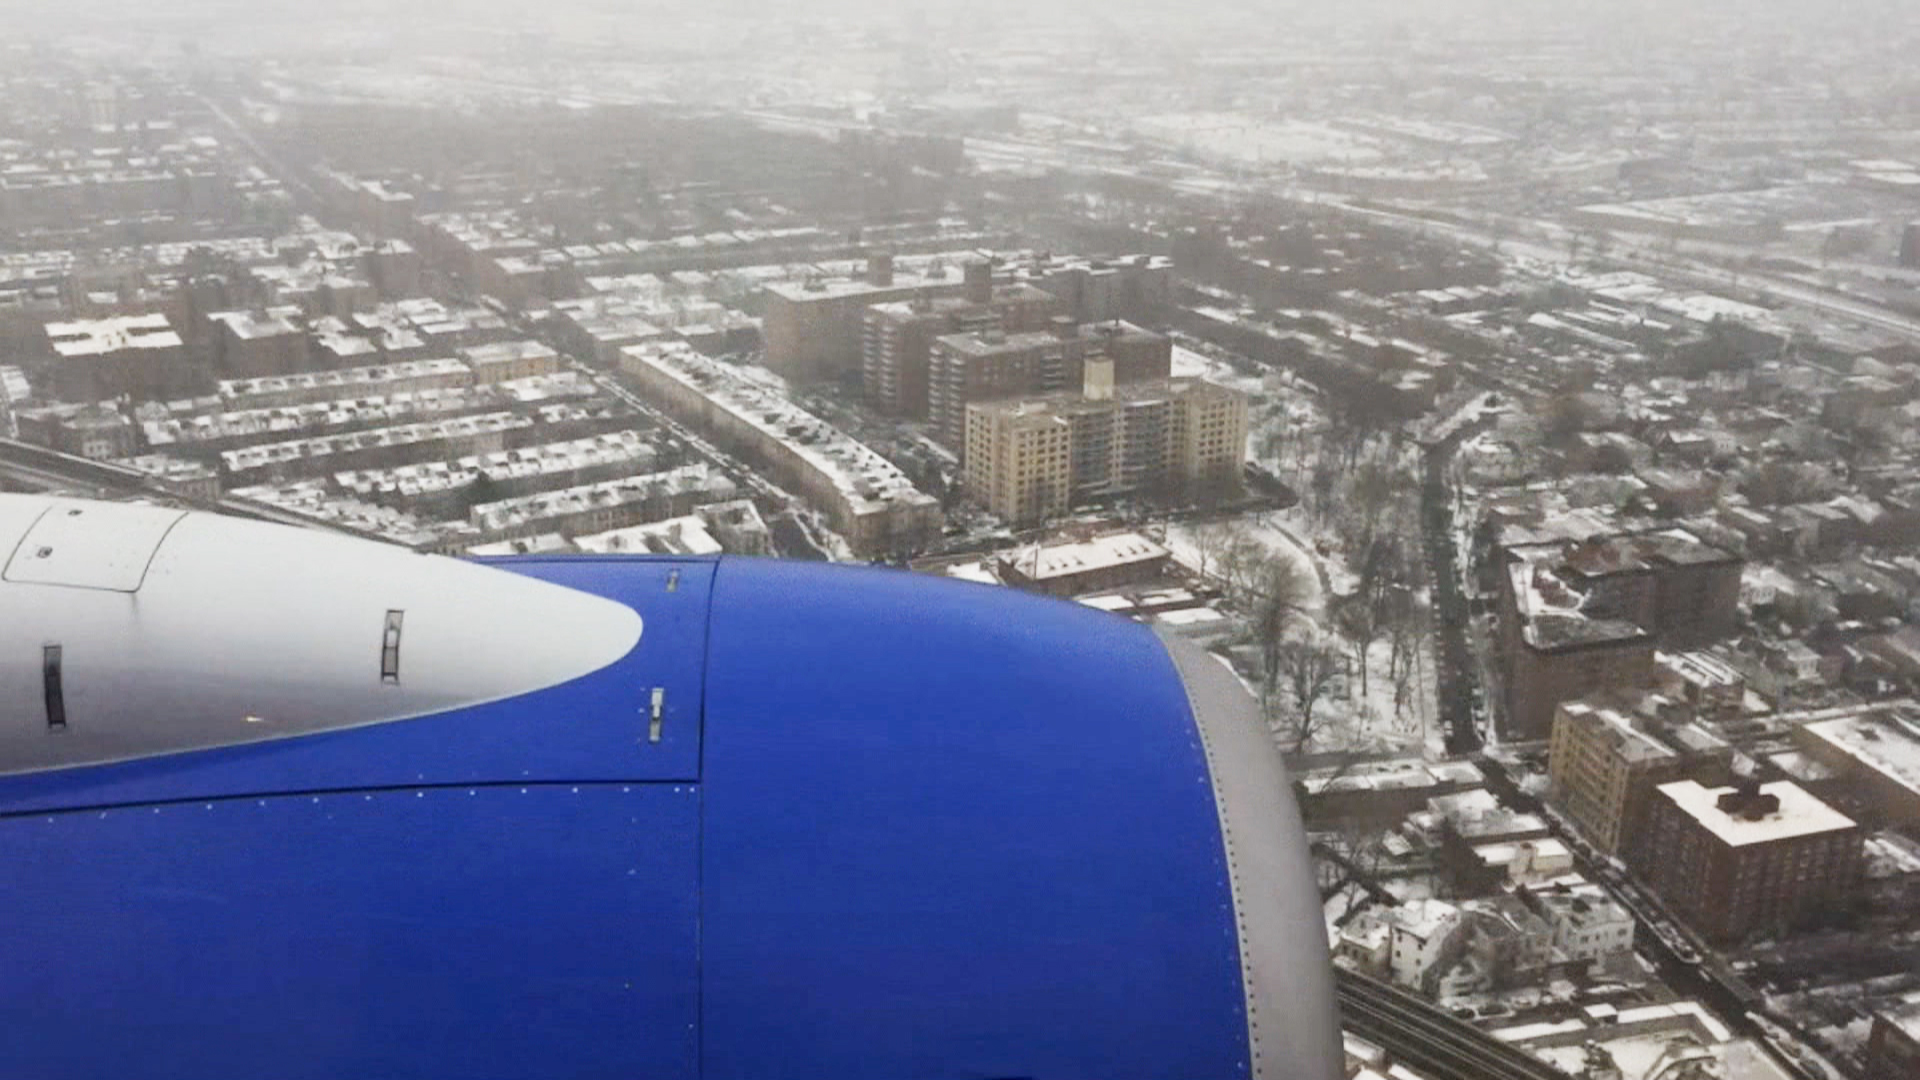 Time Lapse Video of Snowy Landing at LaGuardia - NBC News